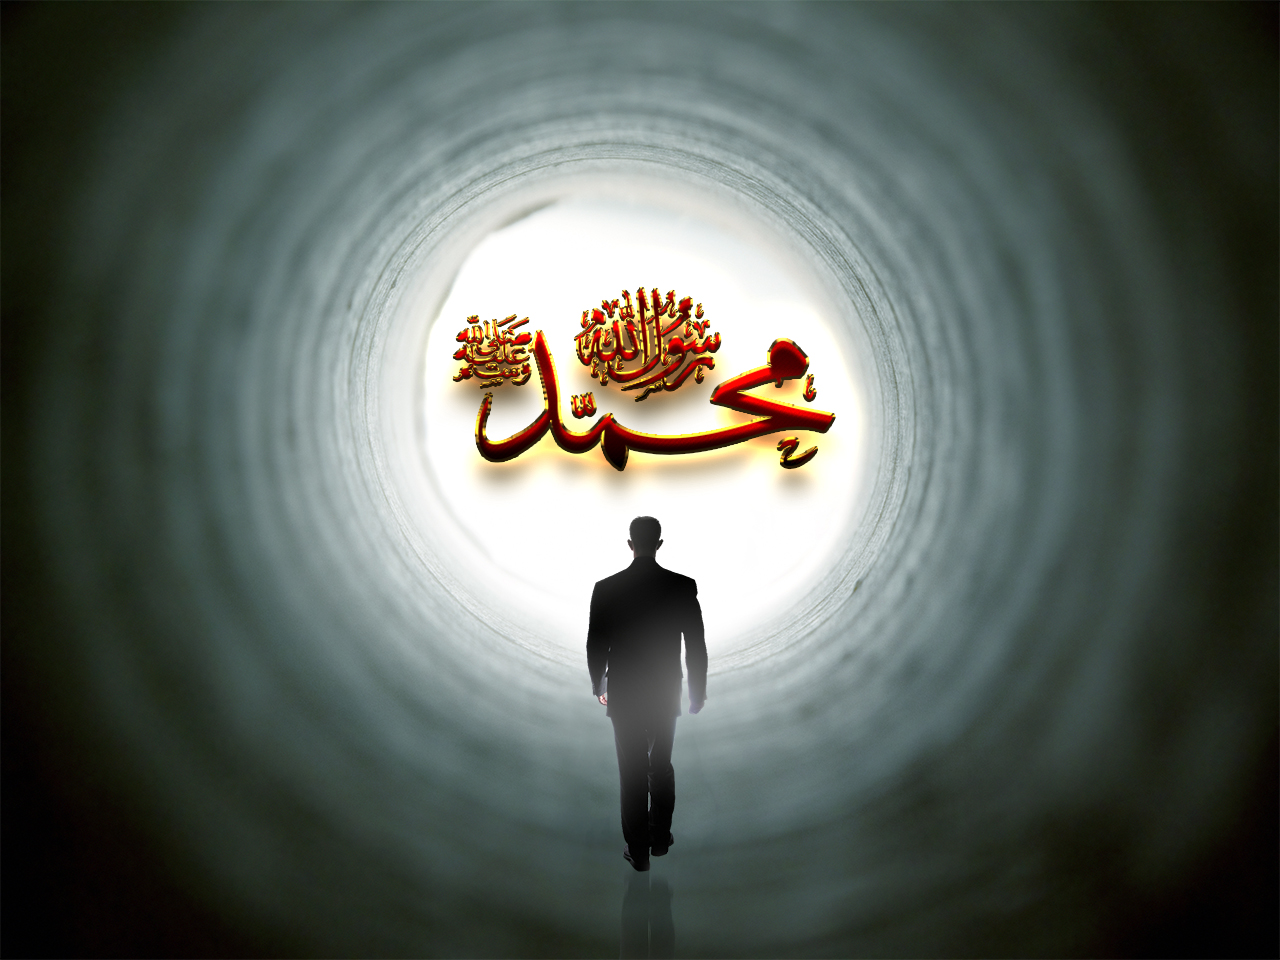 man-in-tunnel-walking-towards-Prophet-s-light